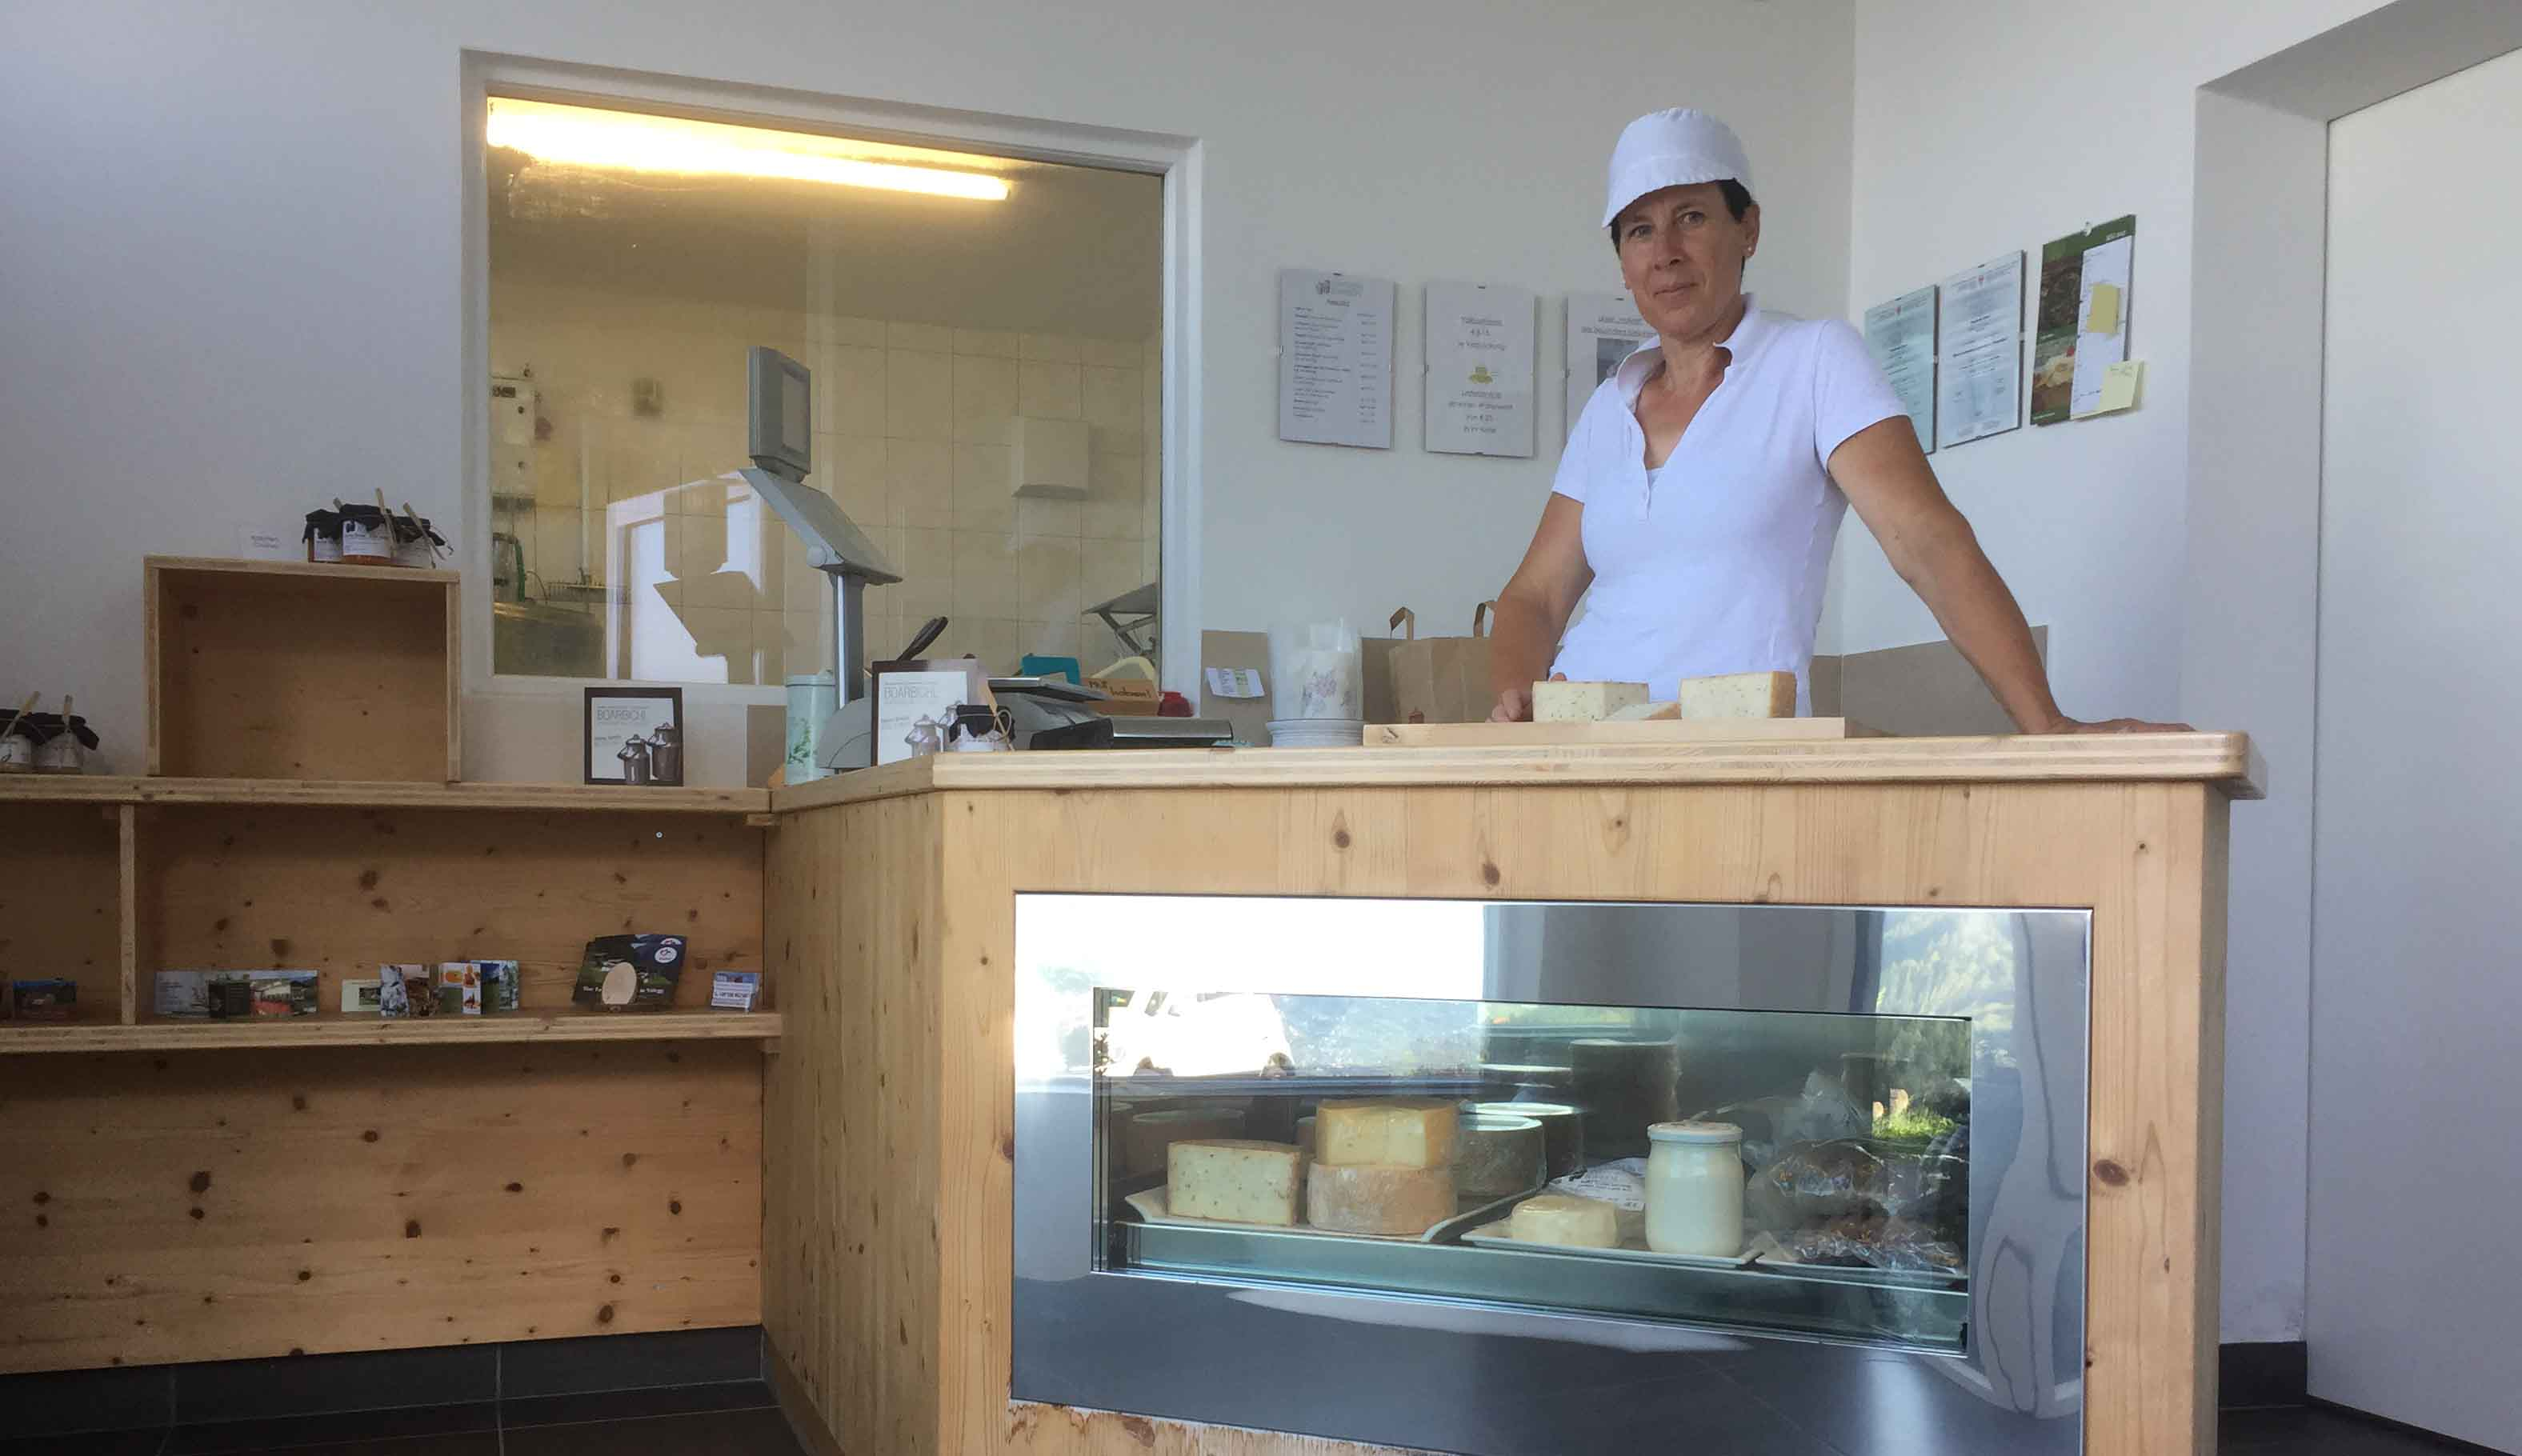 This is Sieglinde from Schenna South Tyrol. She lives on a farm on top of the mountains and is making all sort of cheese there. This is Sieglinde in her cheese shop where she sells cheese.